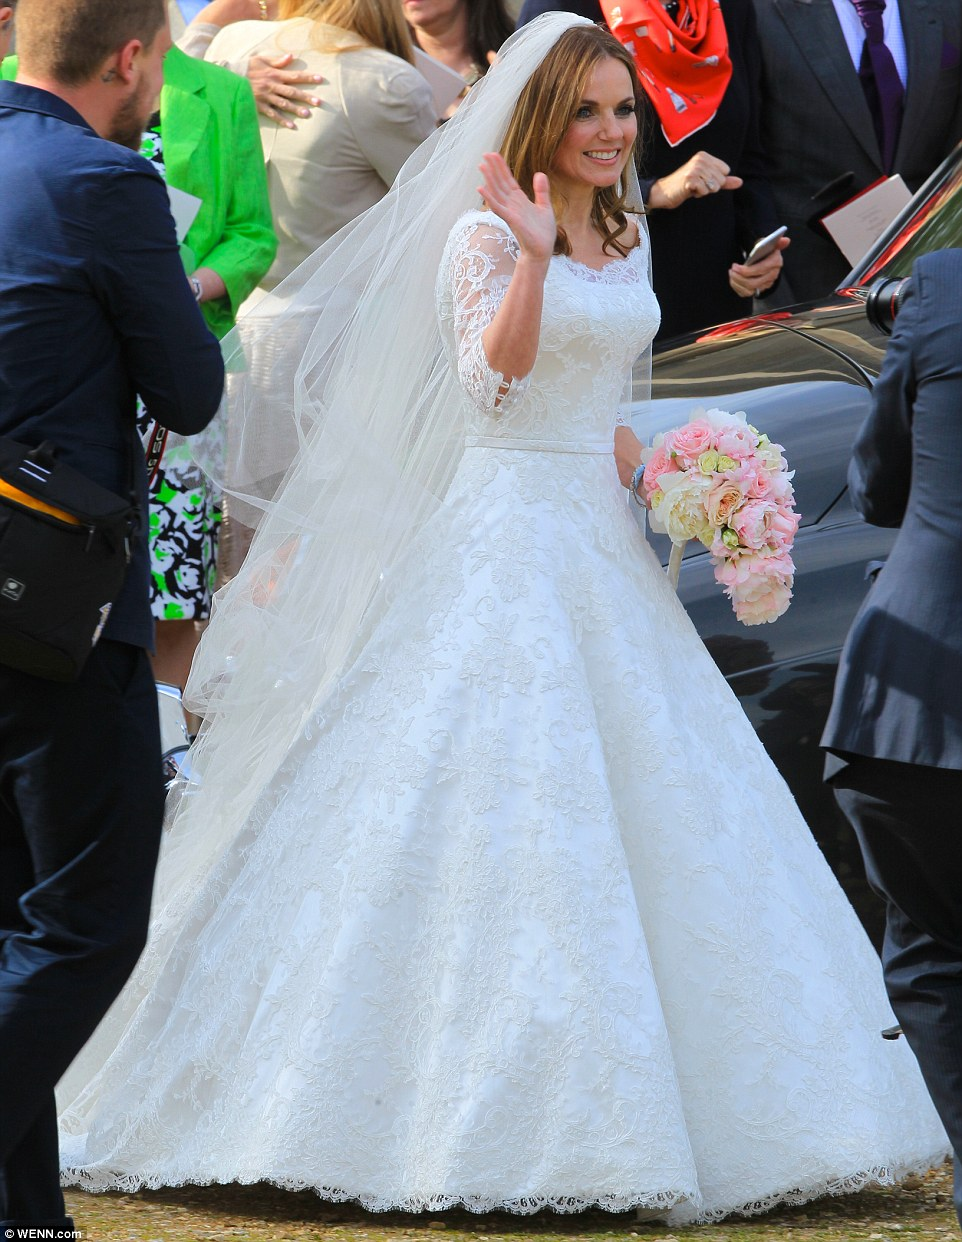 Christian celebrity wedding dresses